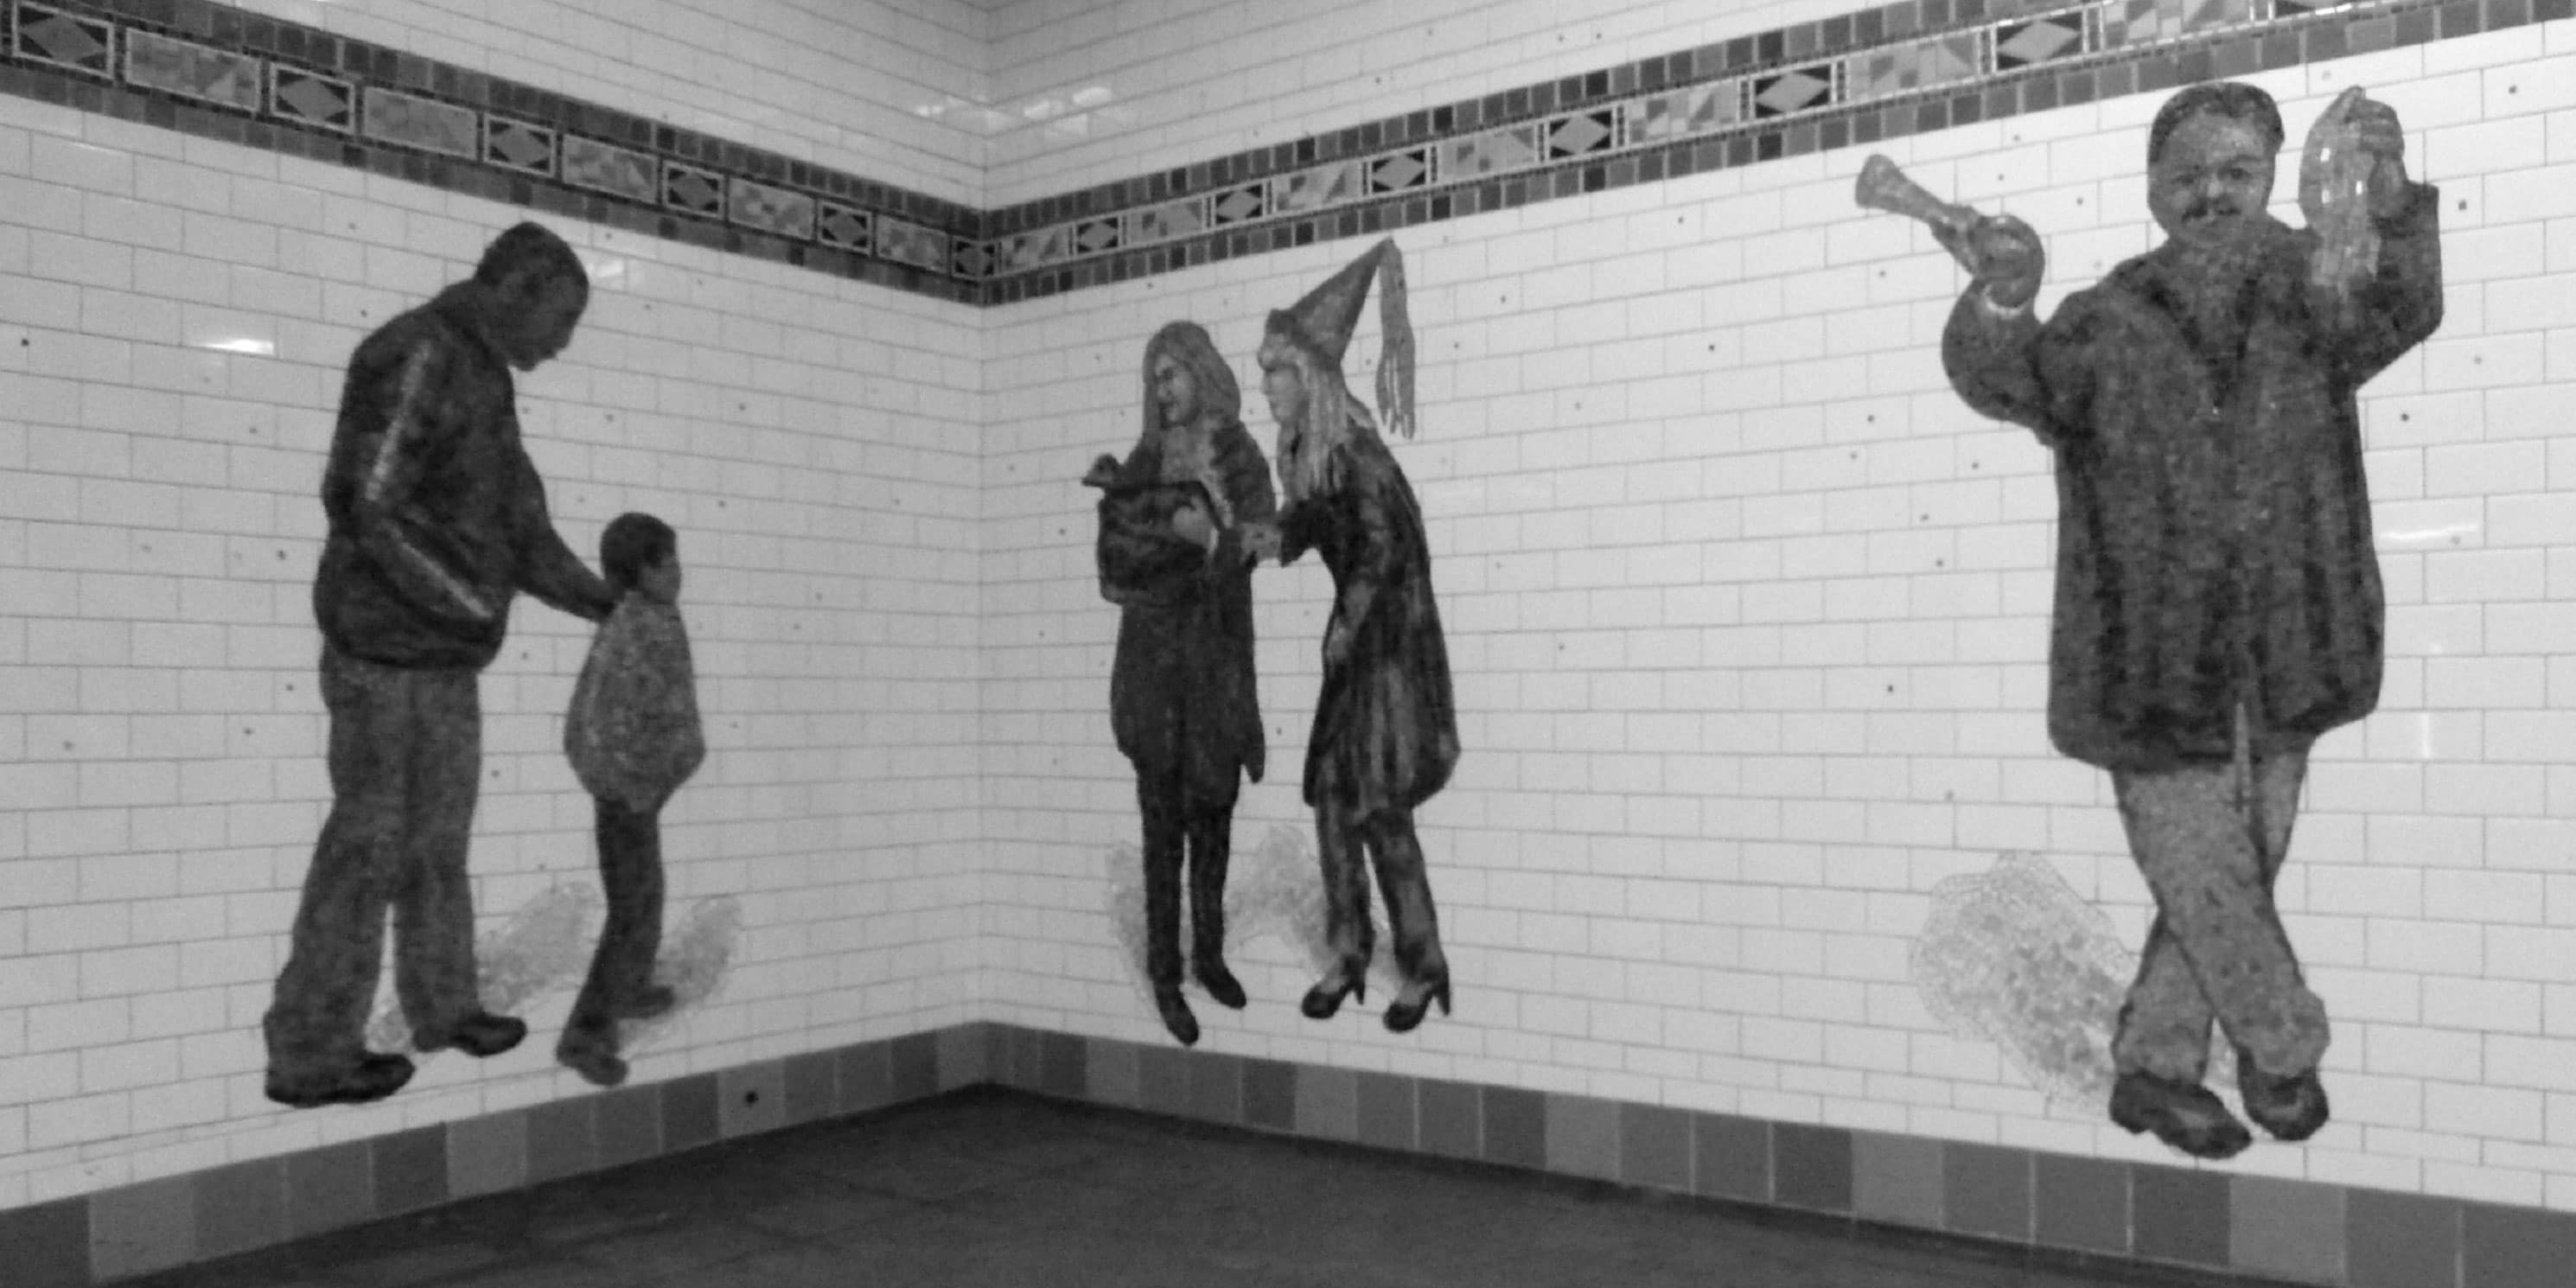 a tile mural in a subway station